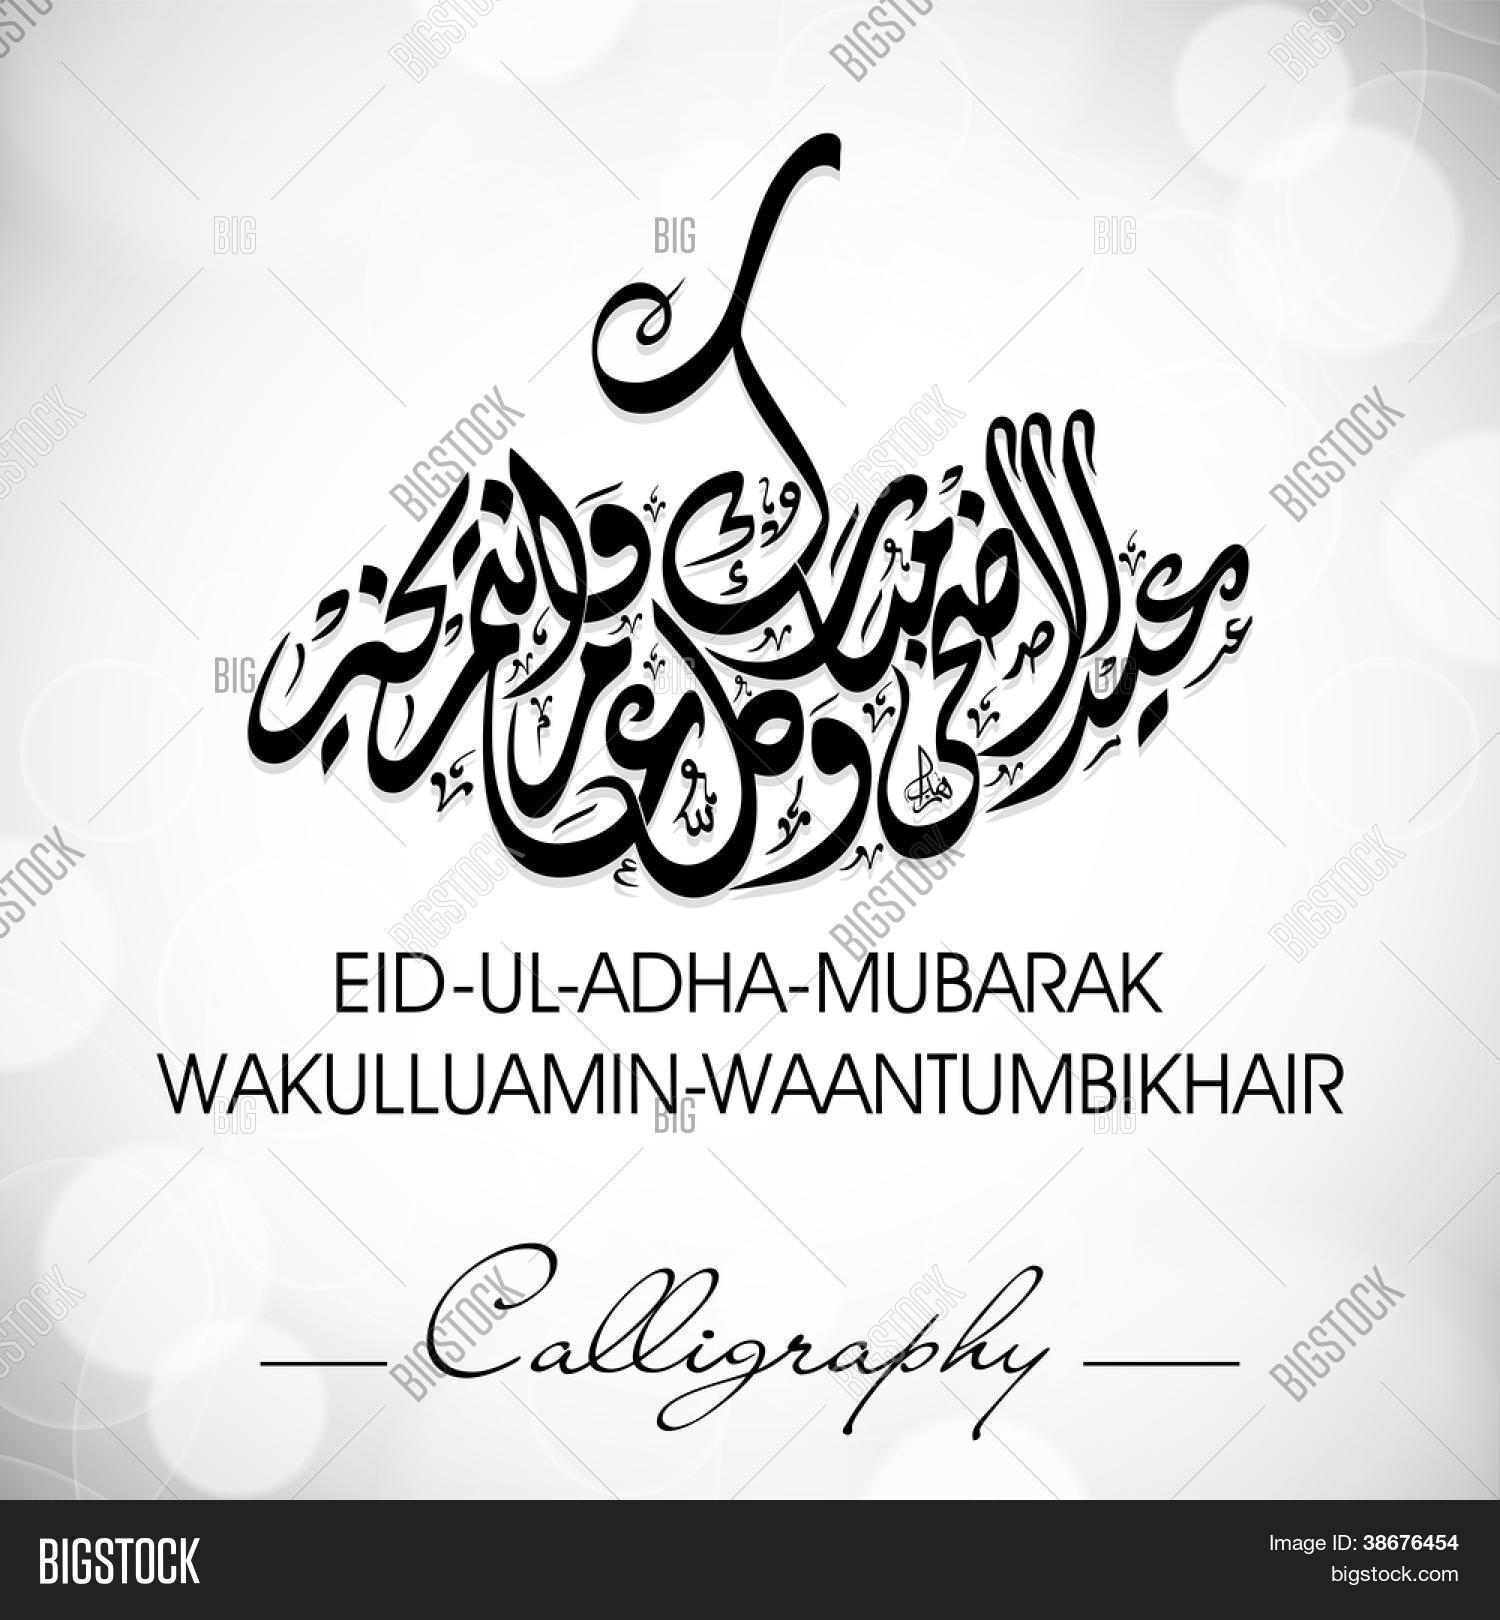 Eid ul adha mubarak azha vector photo bigstock